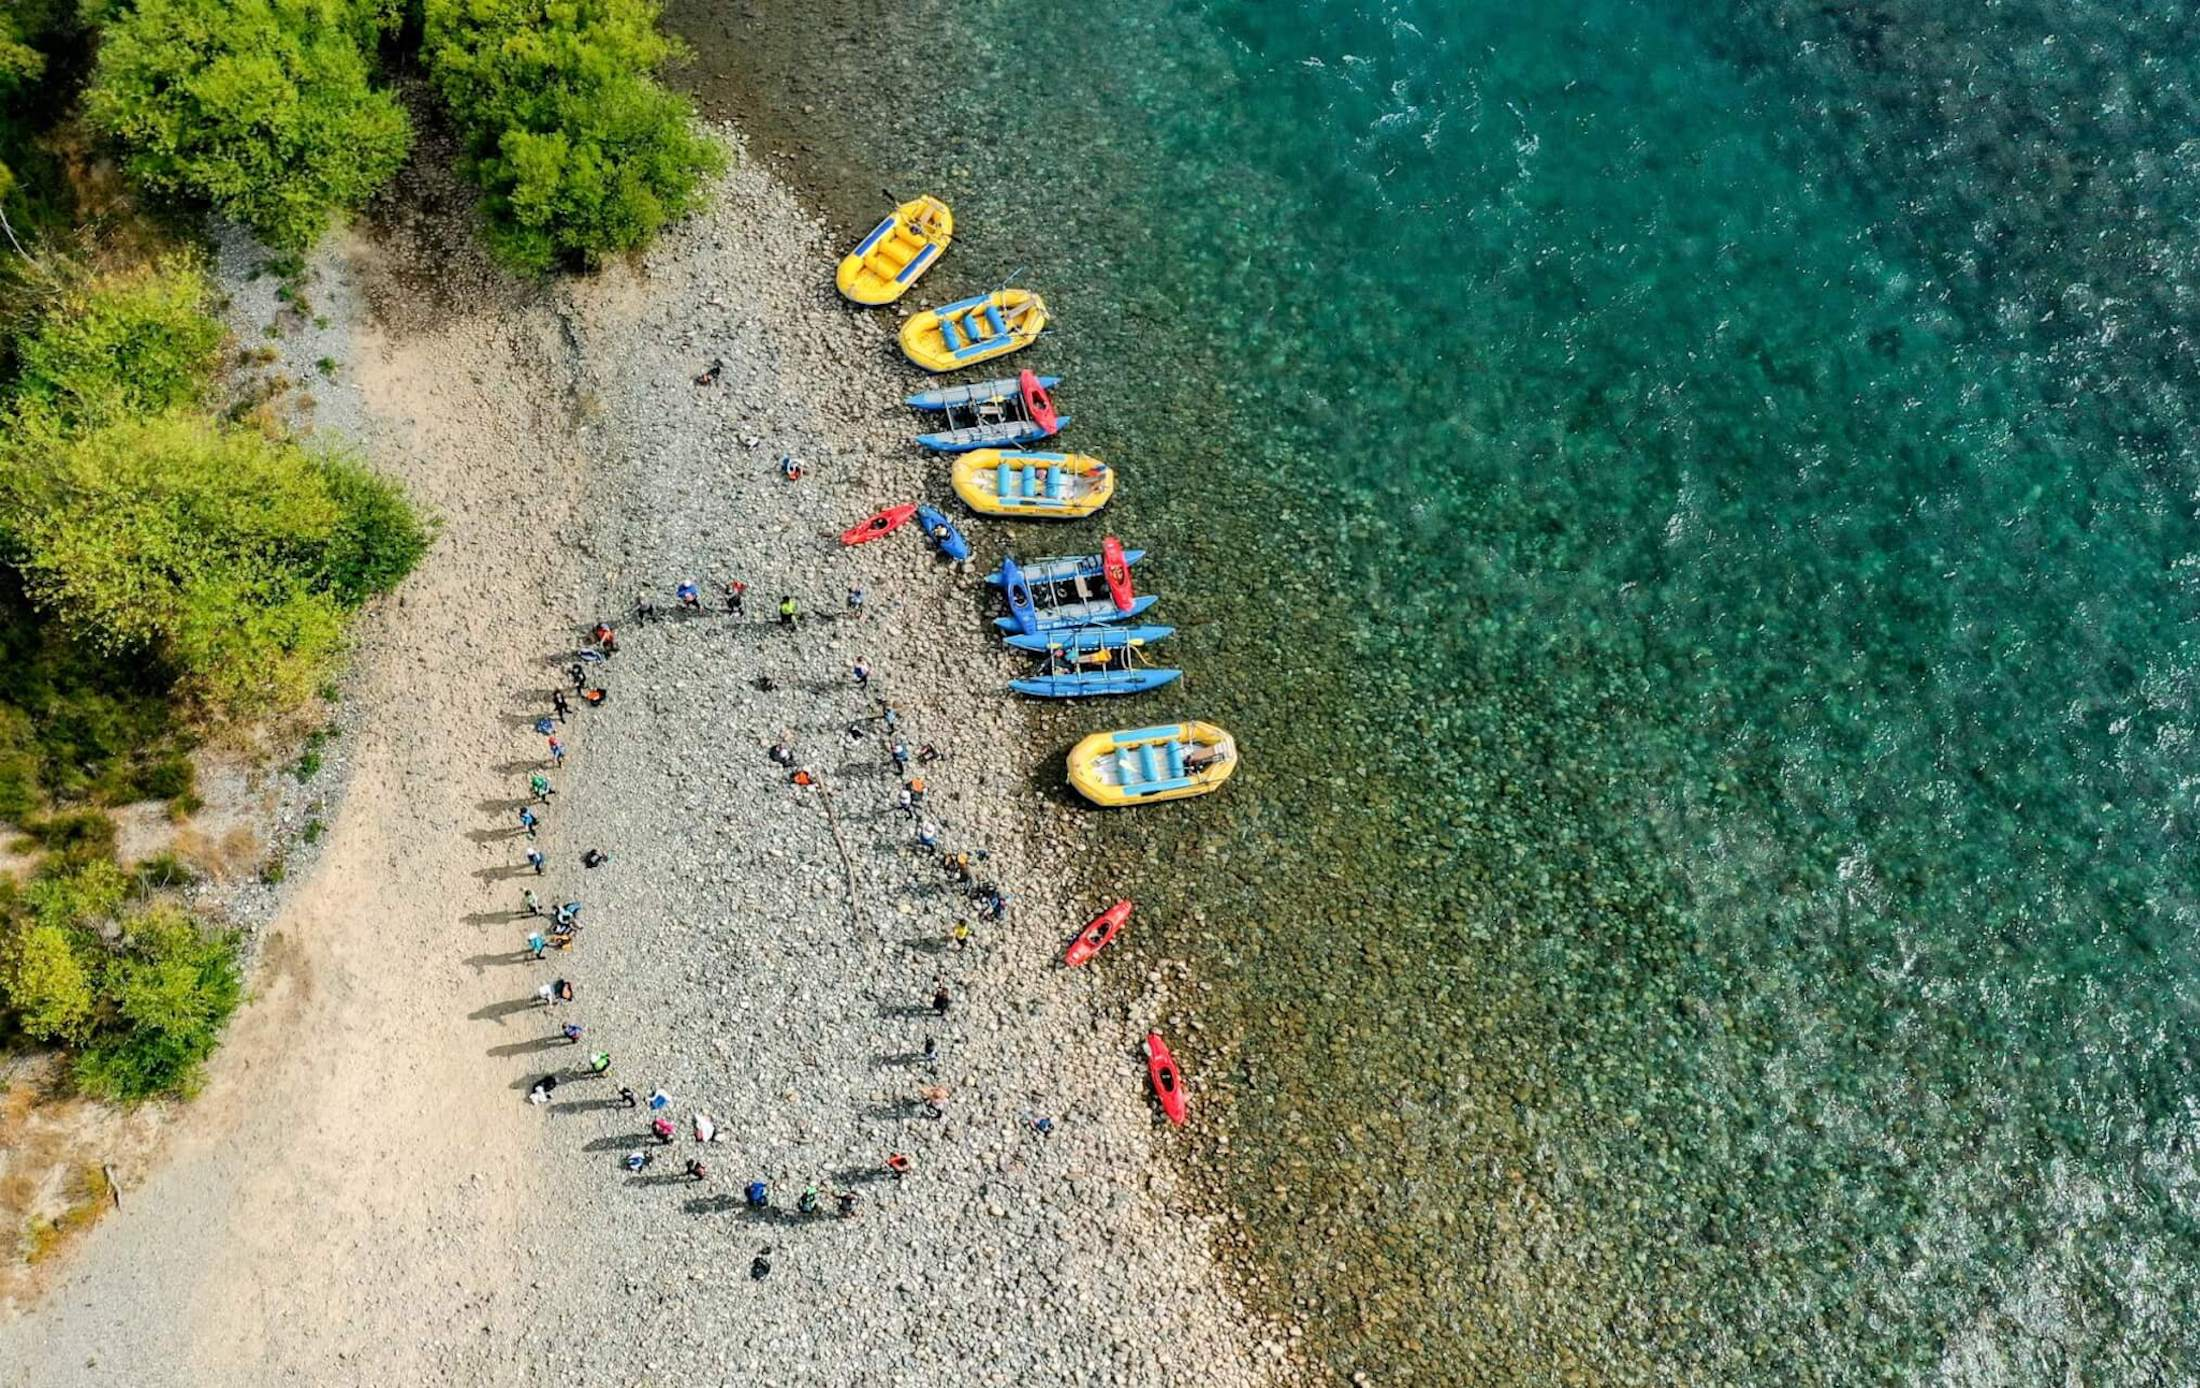 birds eye view of First Descents paddlers and rafts on rocky shore